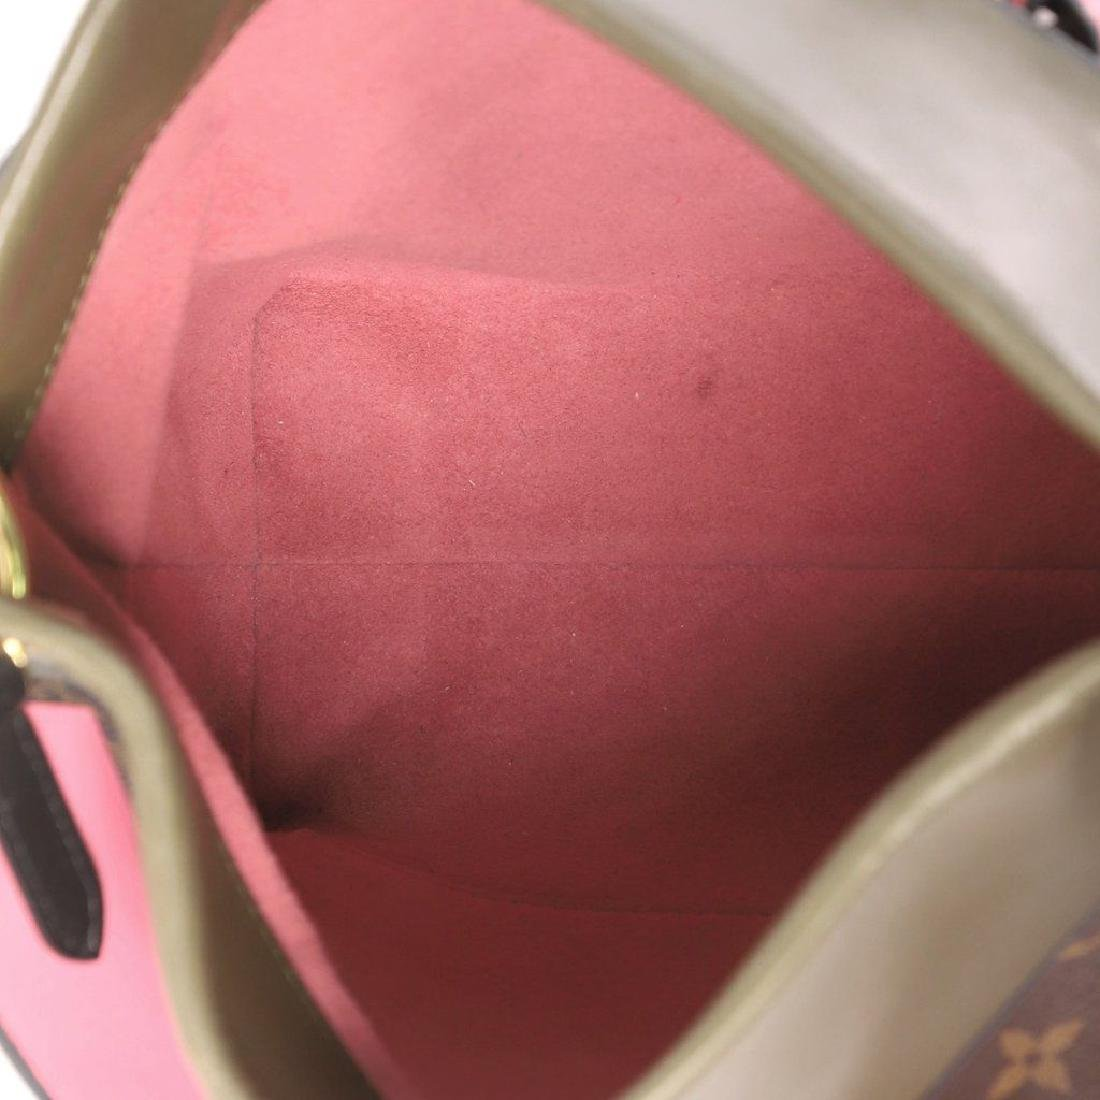 Louis Vuitton Tuileries Besace Bag with Strap in Olive - 6